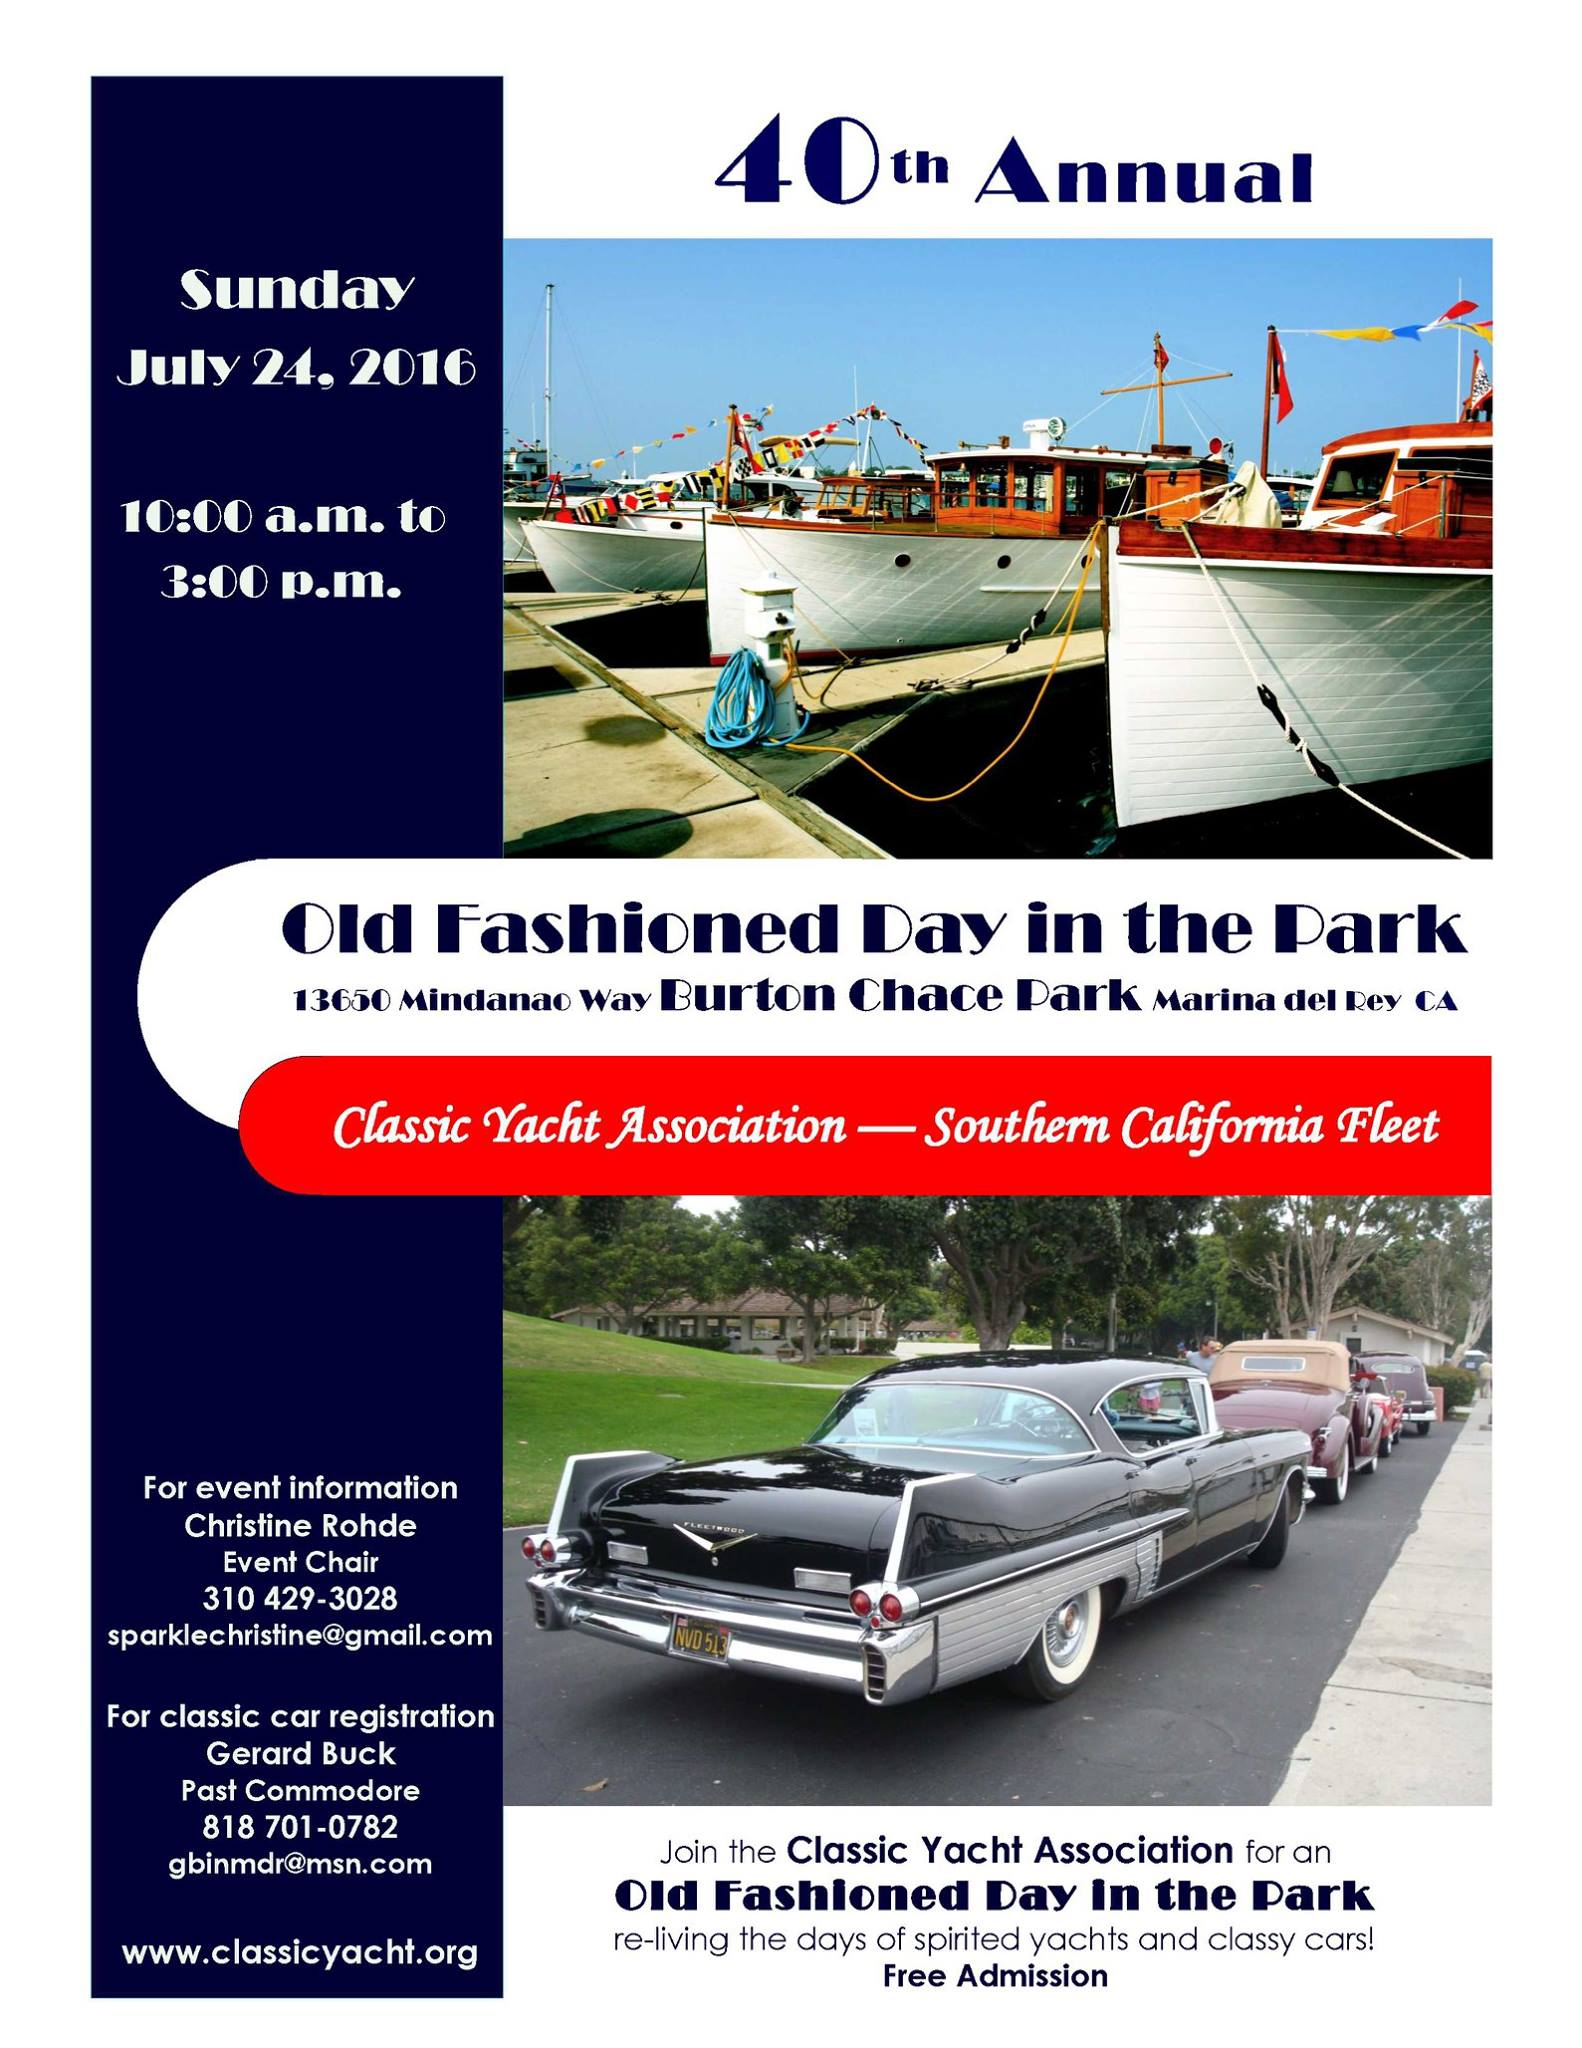 Old Fashioned Day in the Park in Marina del Rey! – Venice Paparazzi ...